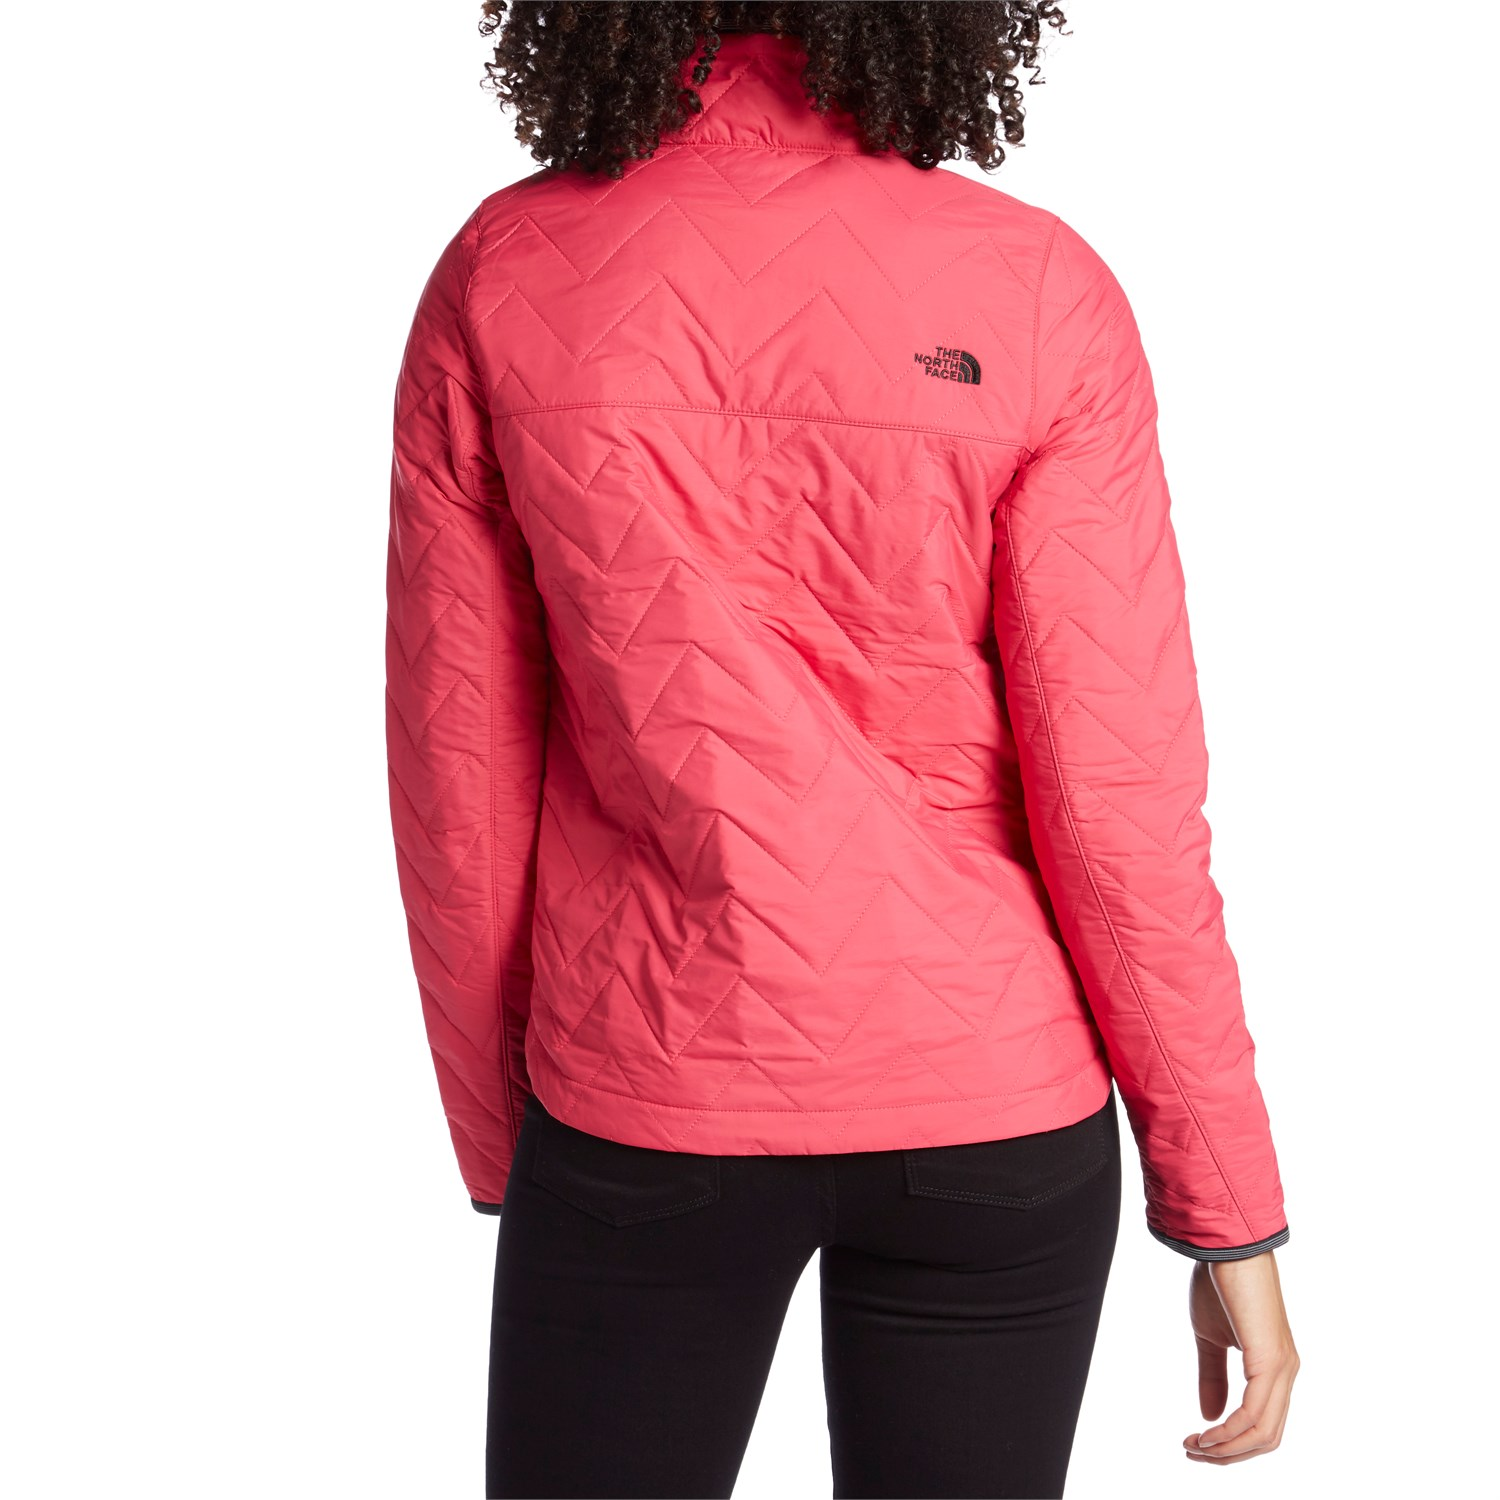 f0cd7d113d0f The North Face Westborough Insulated Jacket - Women s